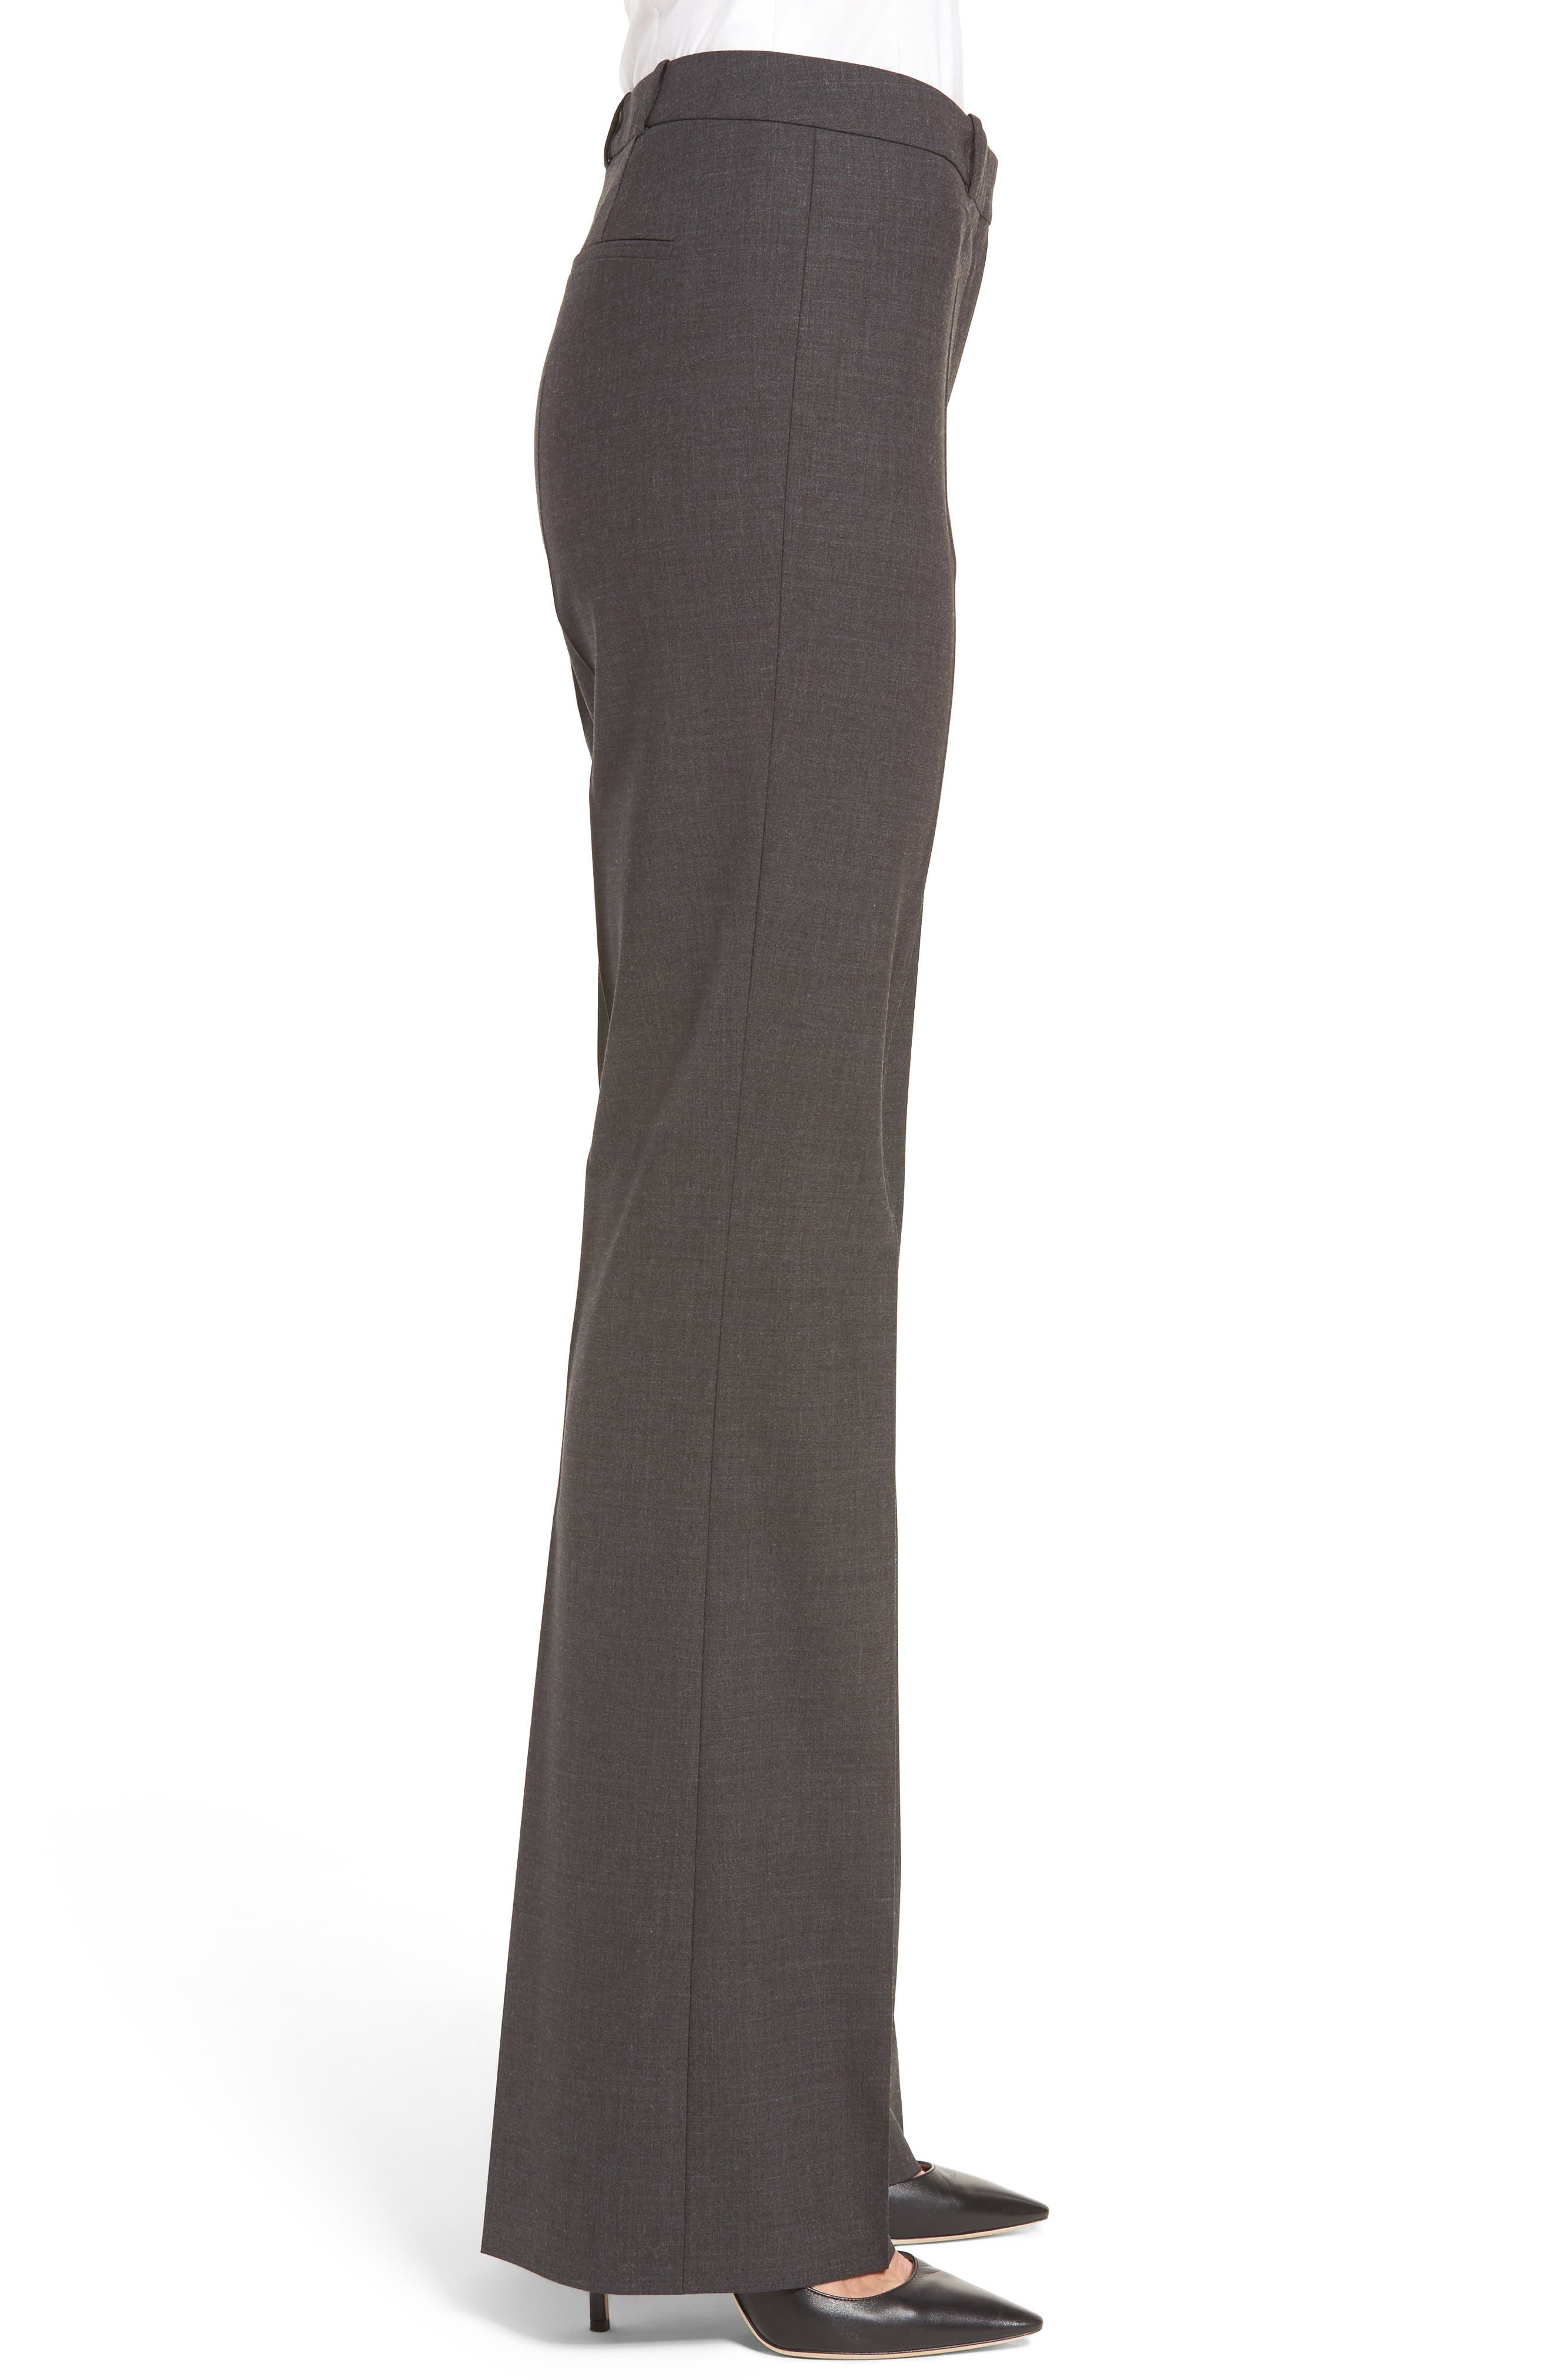 BOSS, Tulea3 Tropical Stretch Wool Trousers, Alternate thumbnail 4, color, CHARCOAL